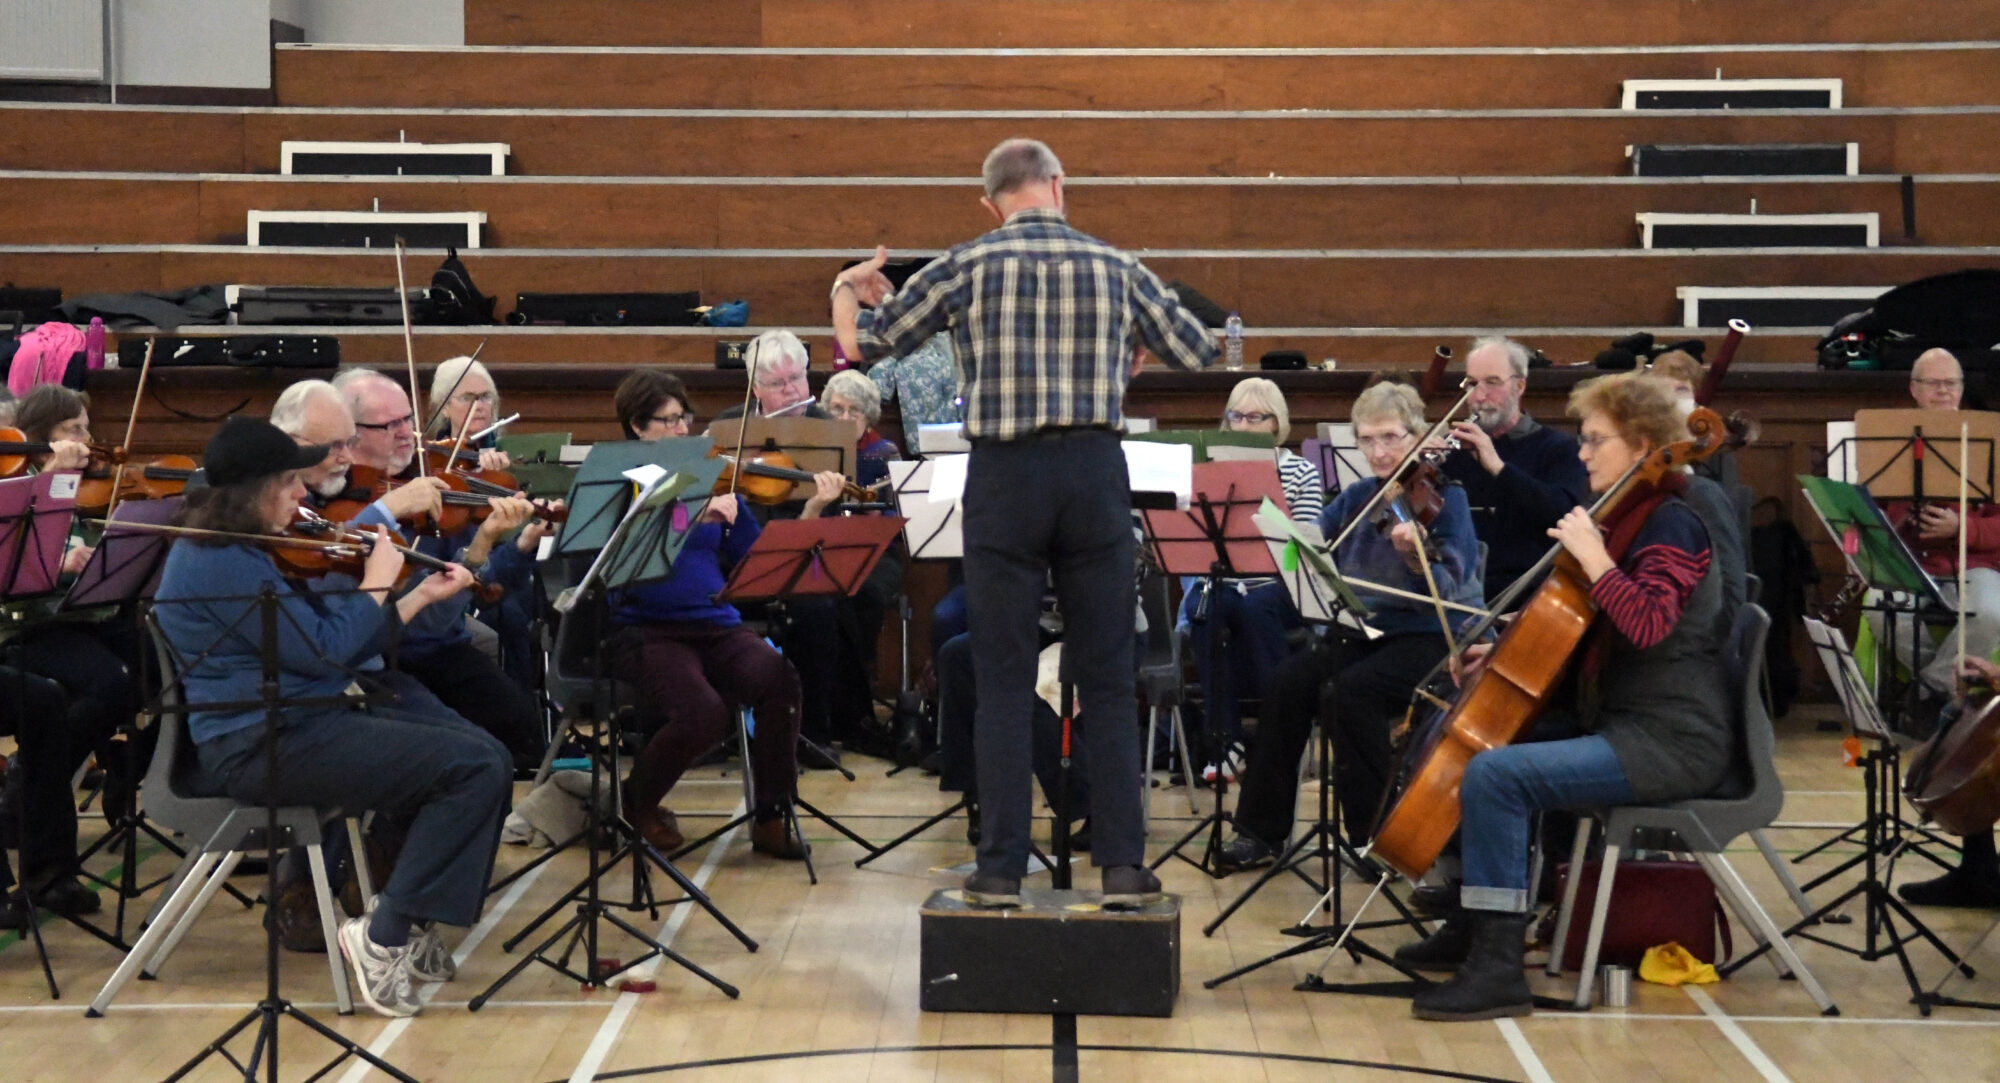 The Southside Community Orchestra